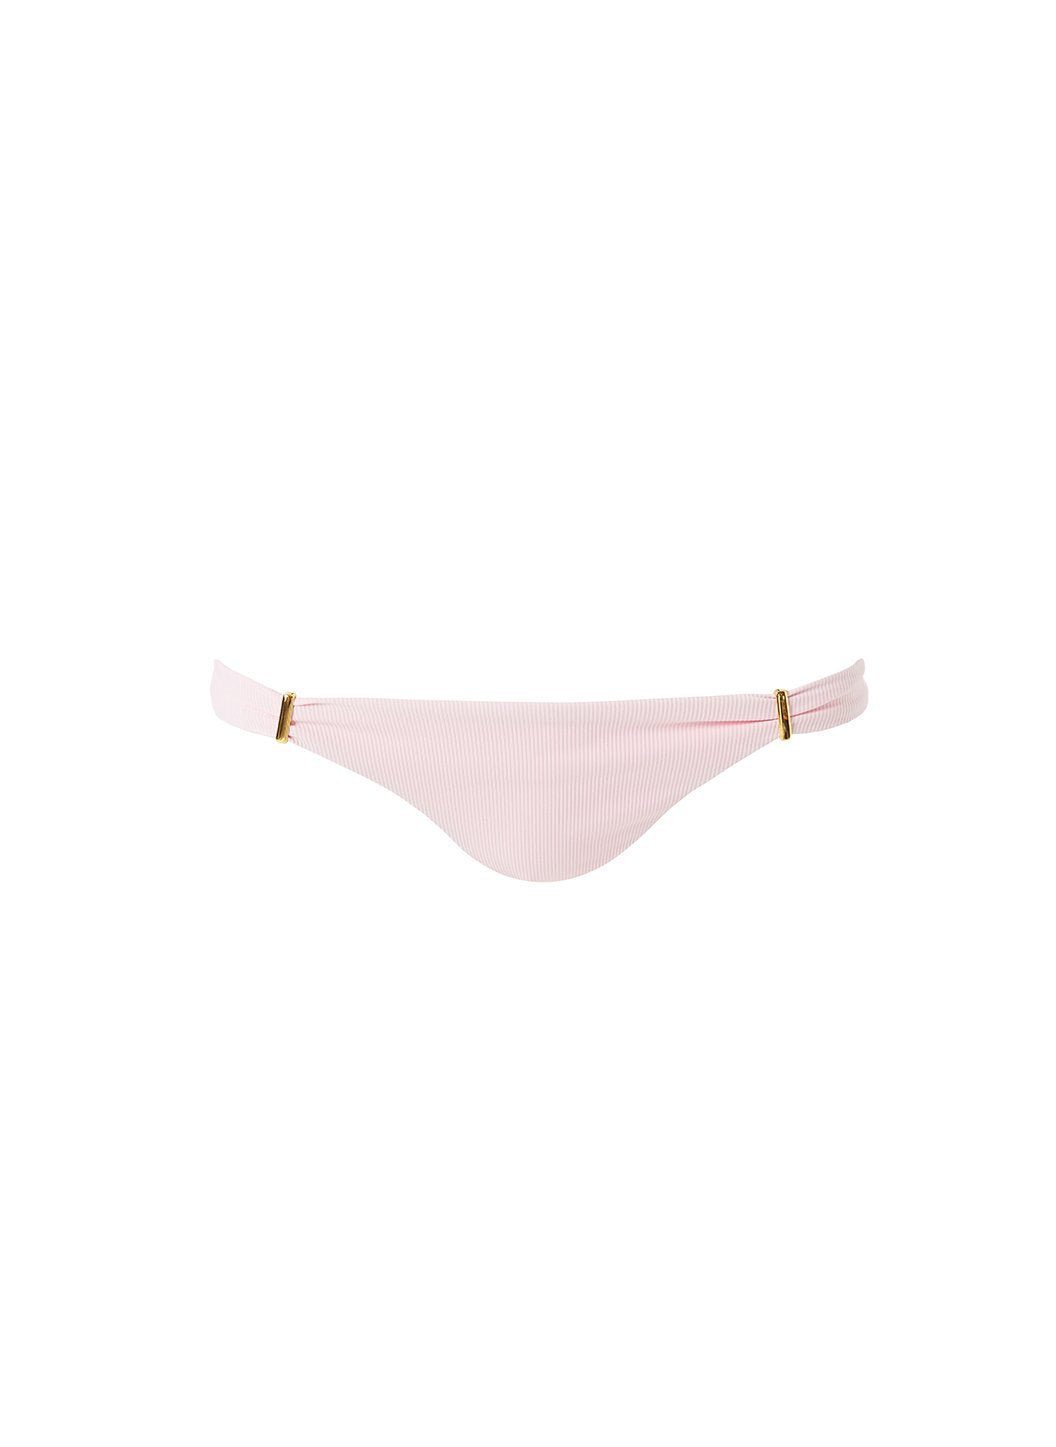 Martinique Ribbed Blush Bikini Bottom Cutout